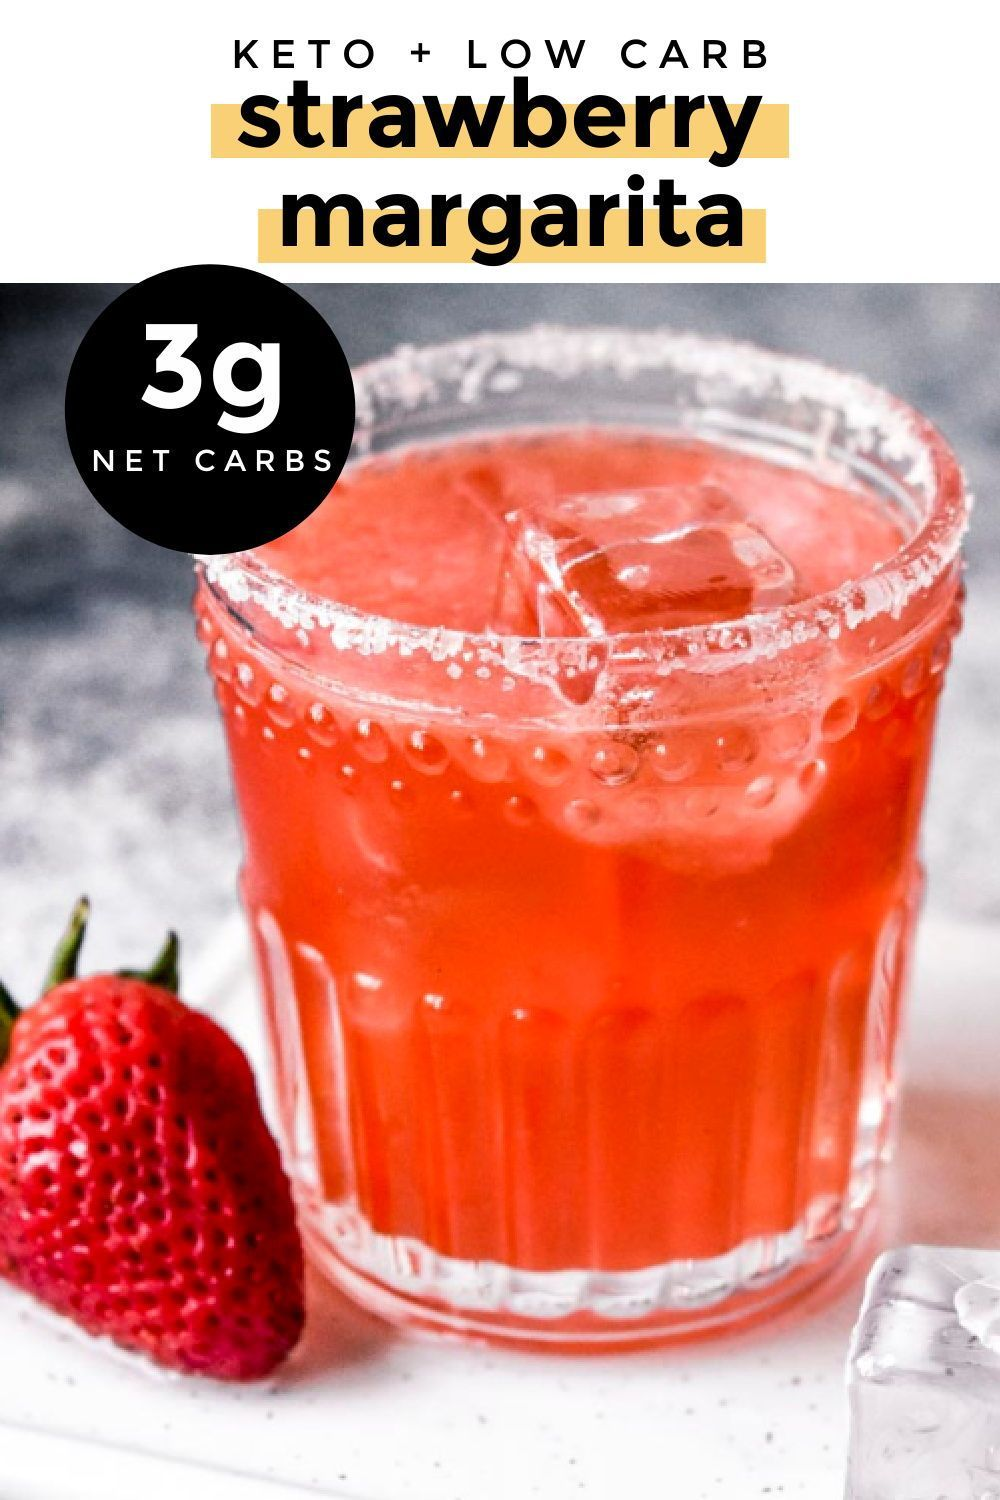 Low Carb Strawberry Margarita 3g Net Carbs Recipe In 2020 Delicious Snacks Recipes Low Carb Keto Recipes Low Carb Cocktails